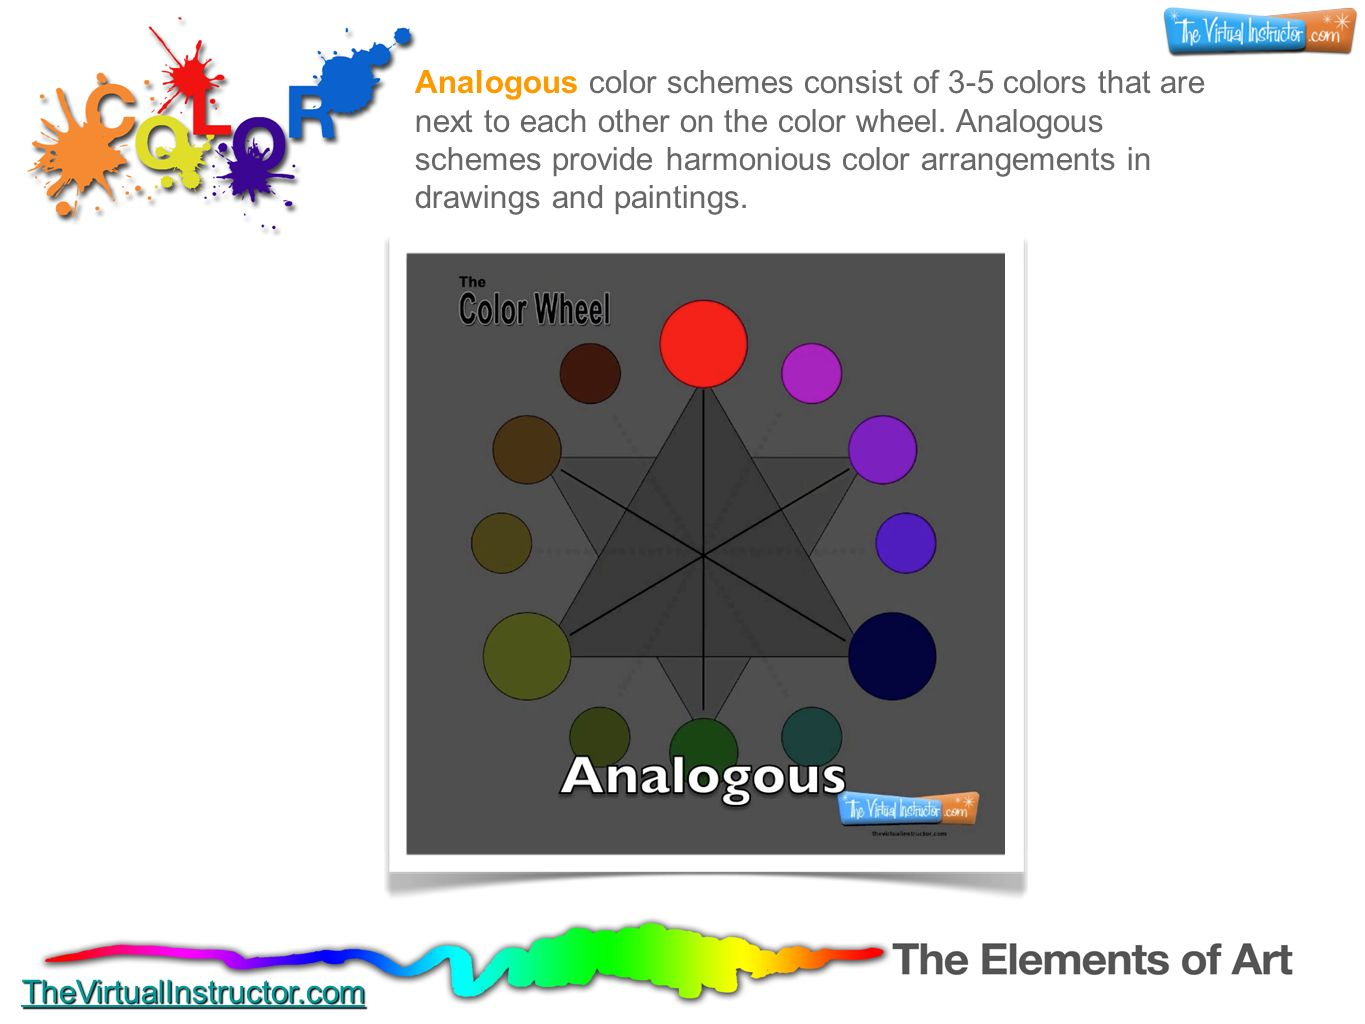 Color The Elements Of Art TheVirtualInstructor